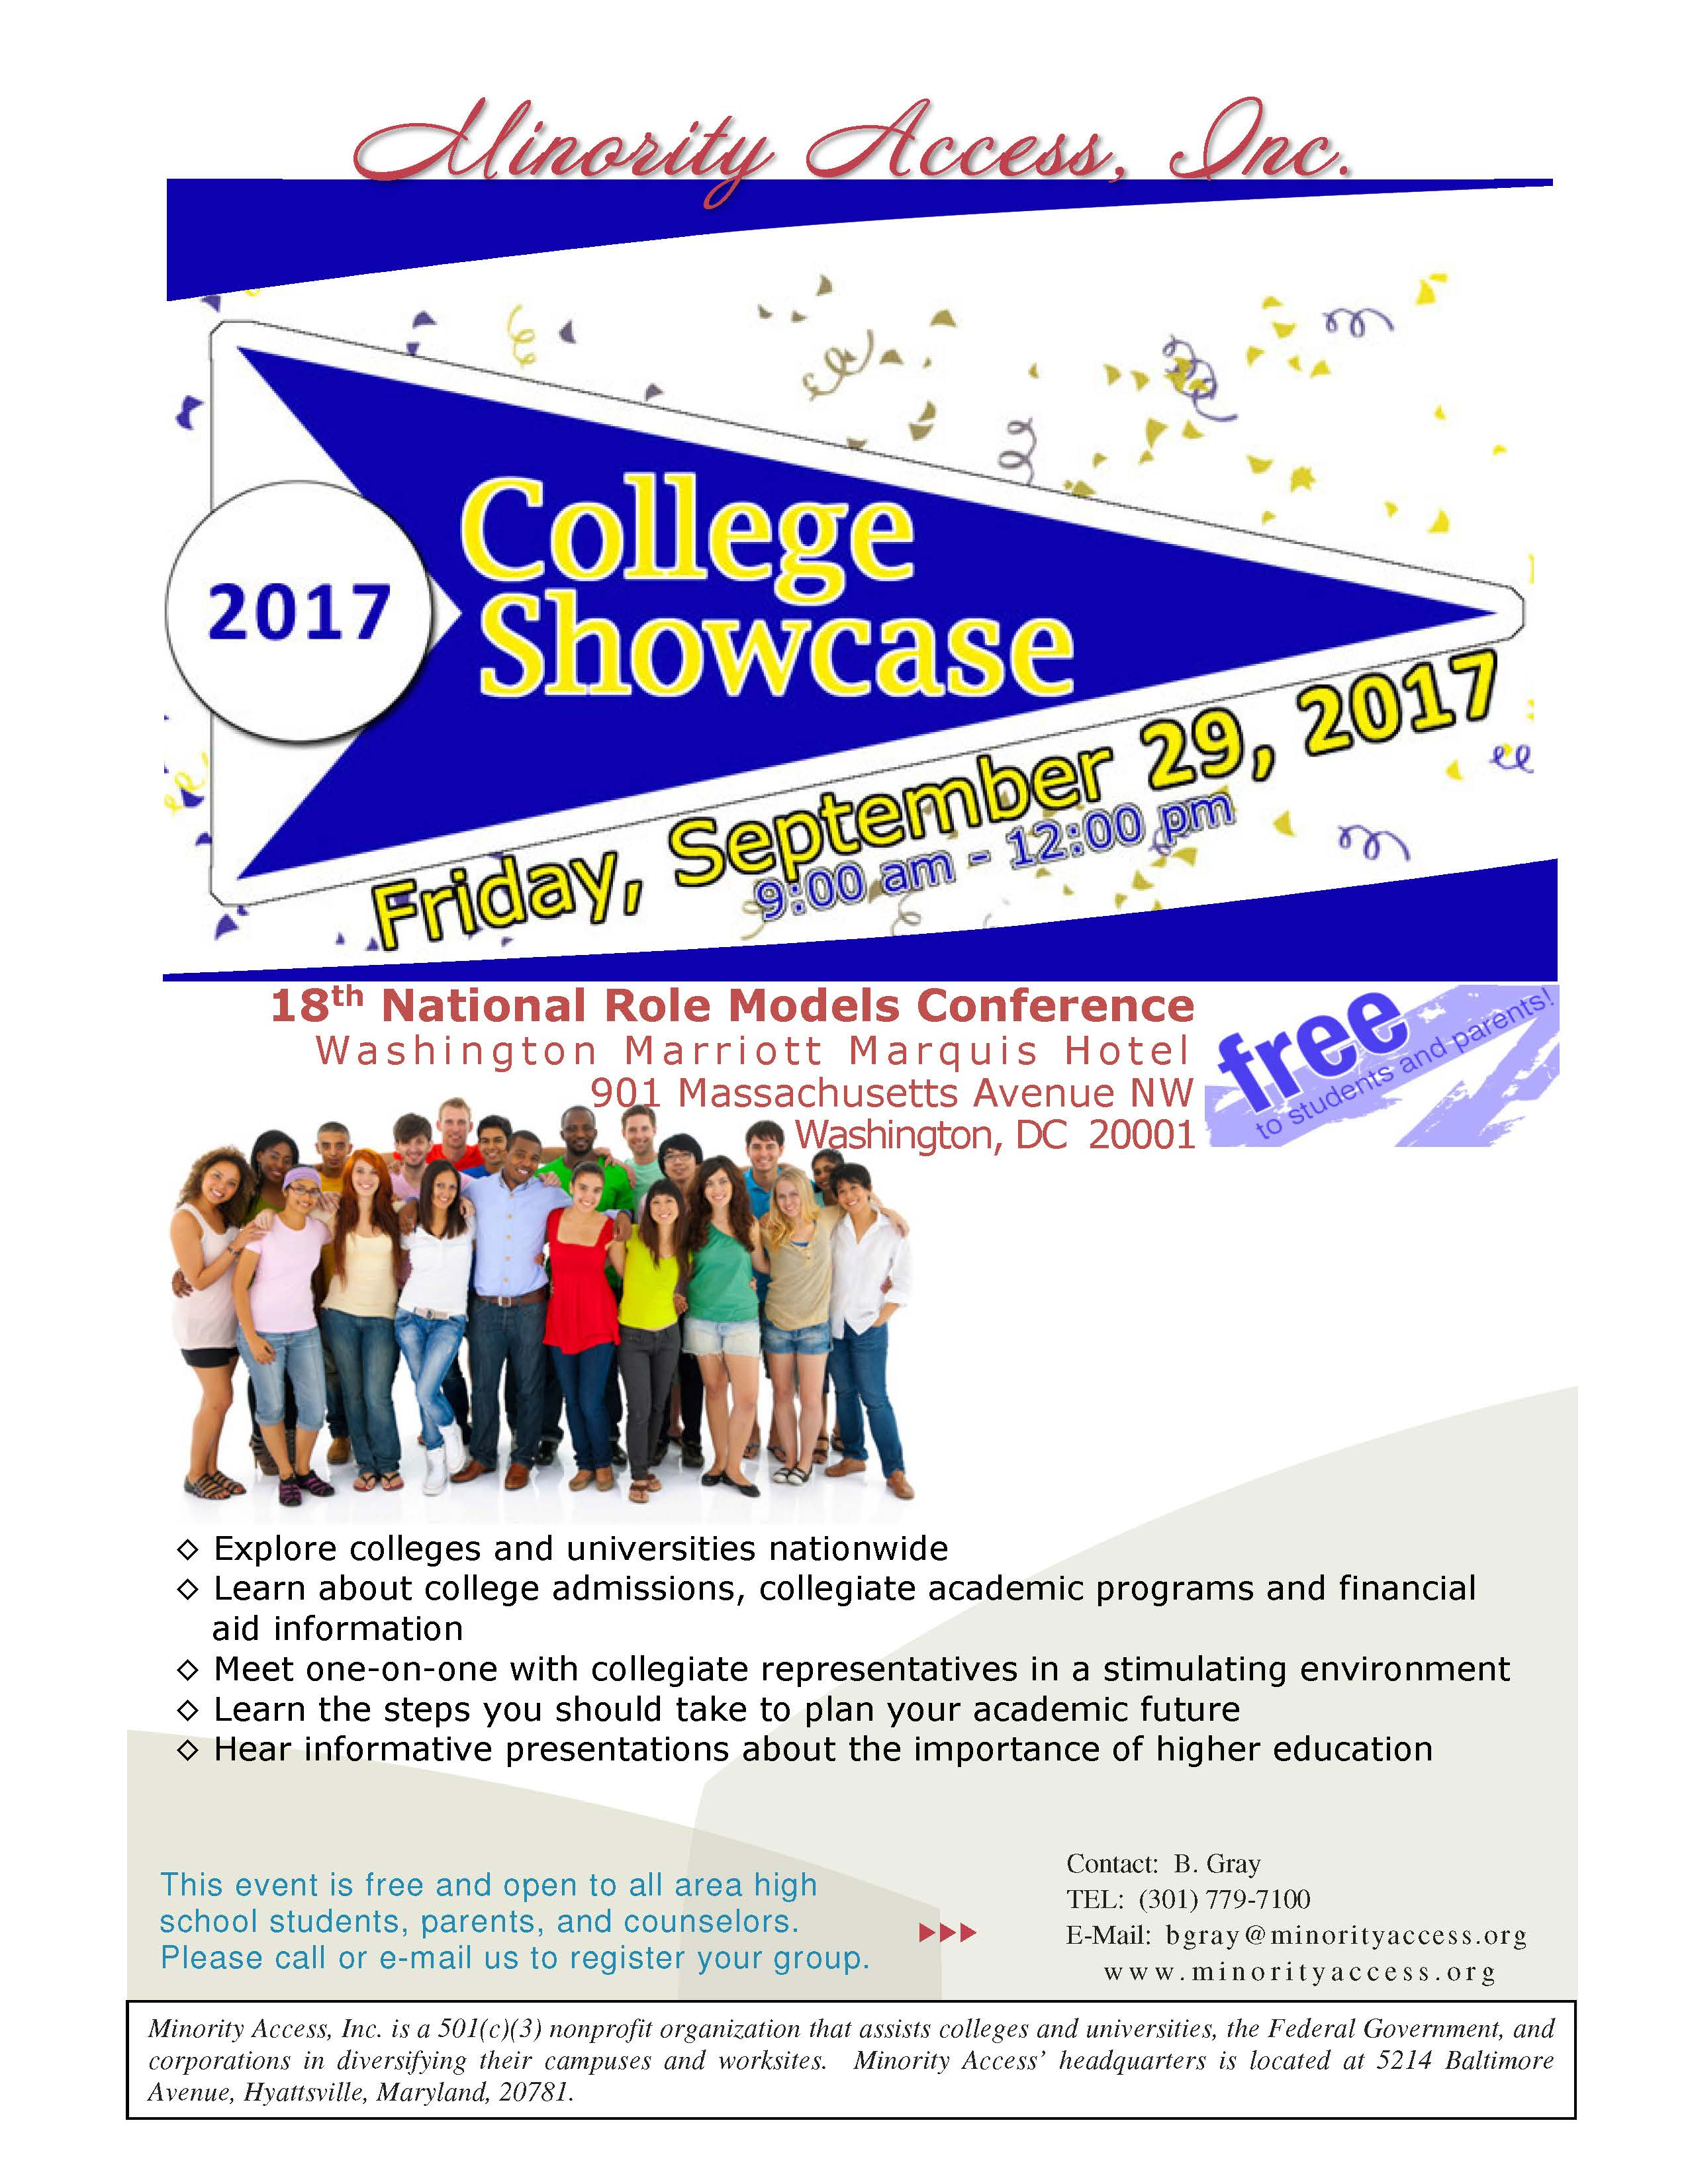 College Showcase Event Flyer